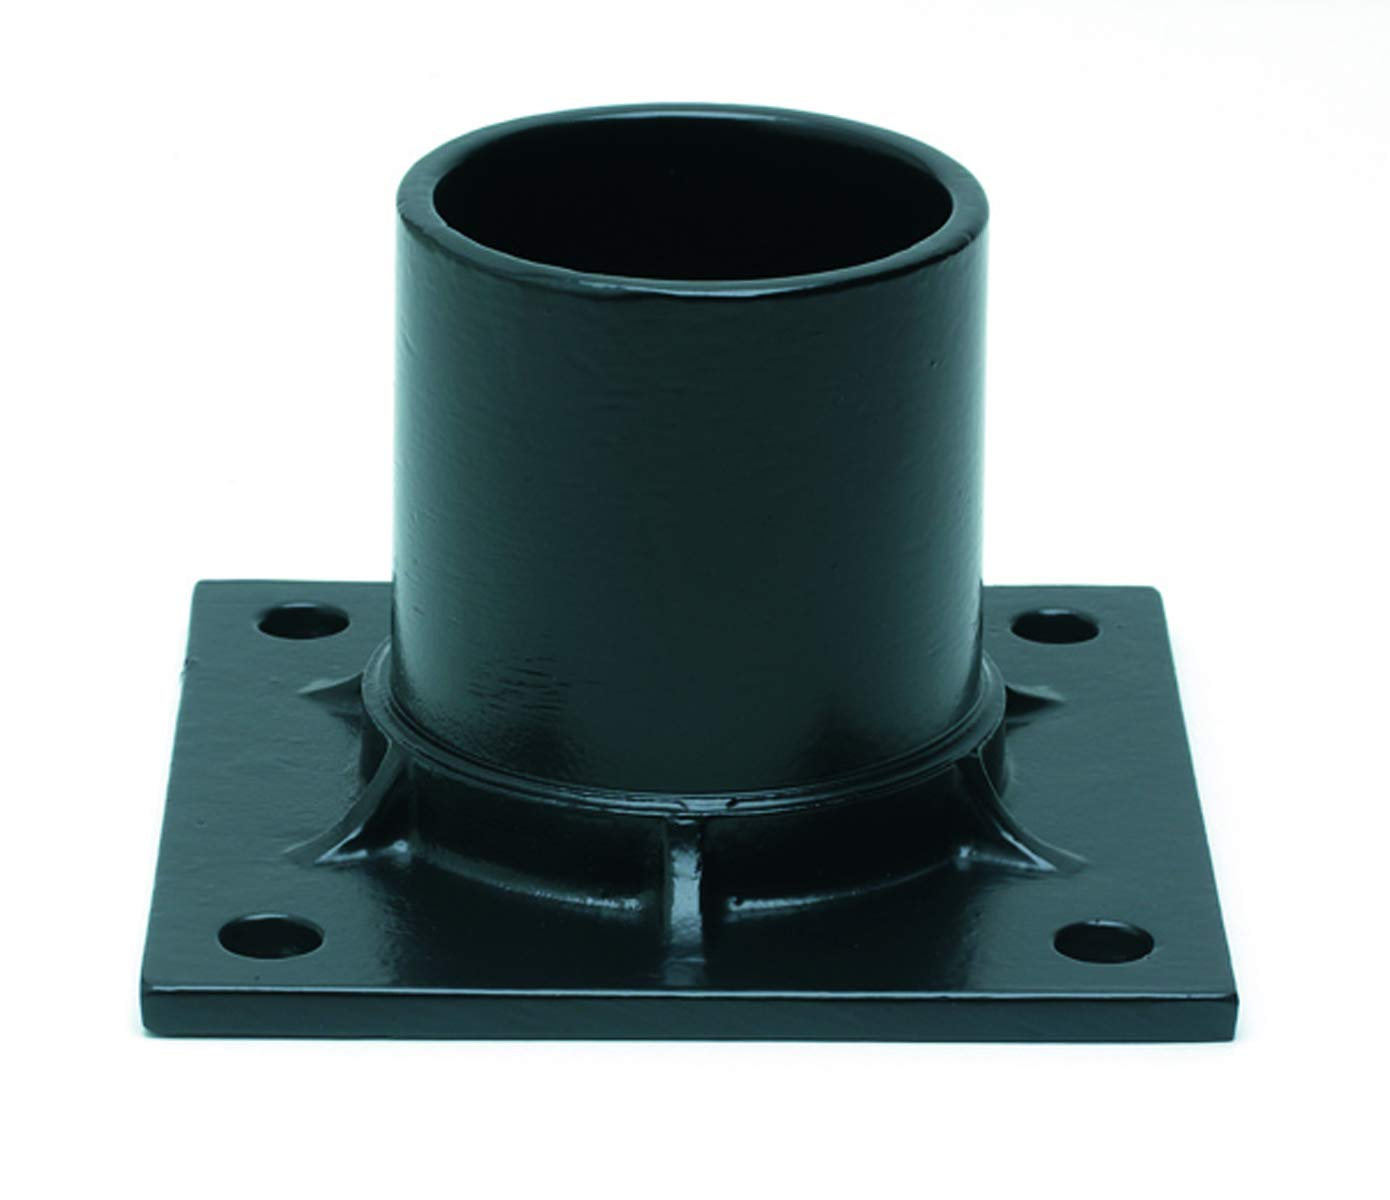 Solo Lights Black Aluminum Pier Mount Adapter Base for 3'' Diameter Stub Post. Mounting Hardware Included